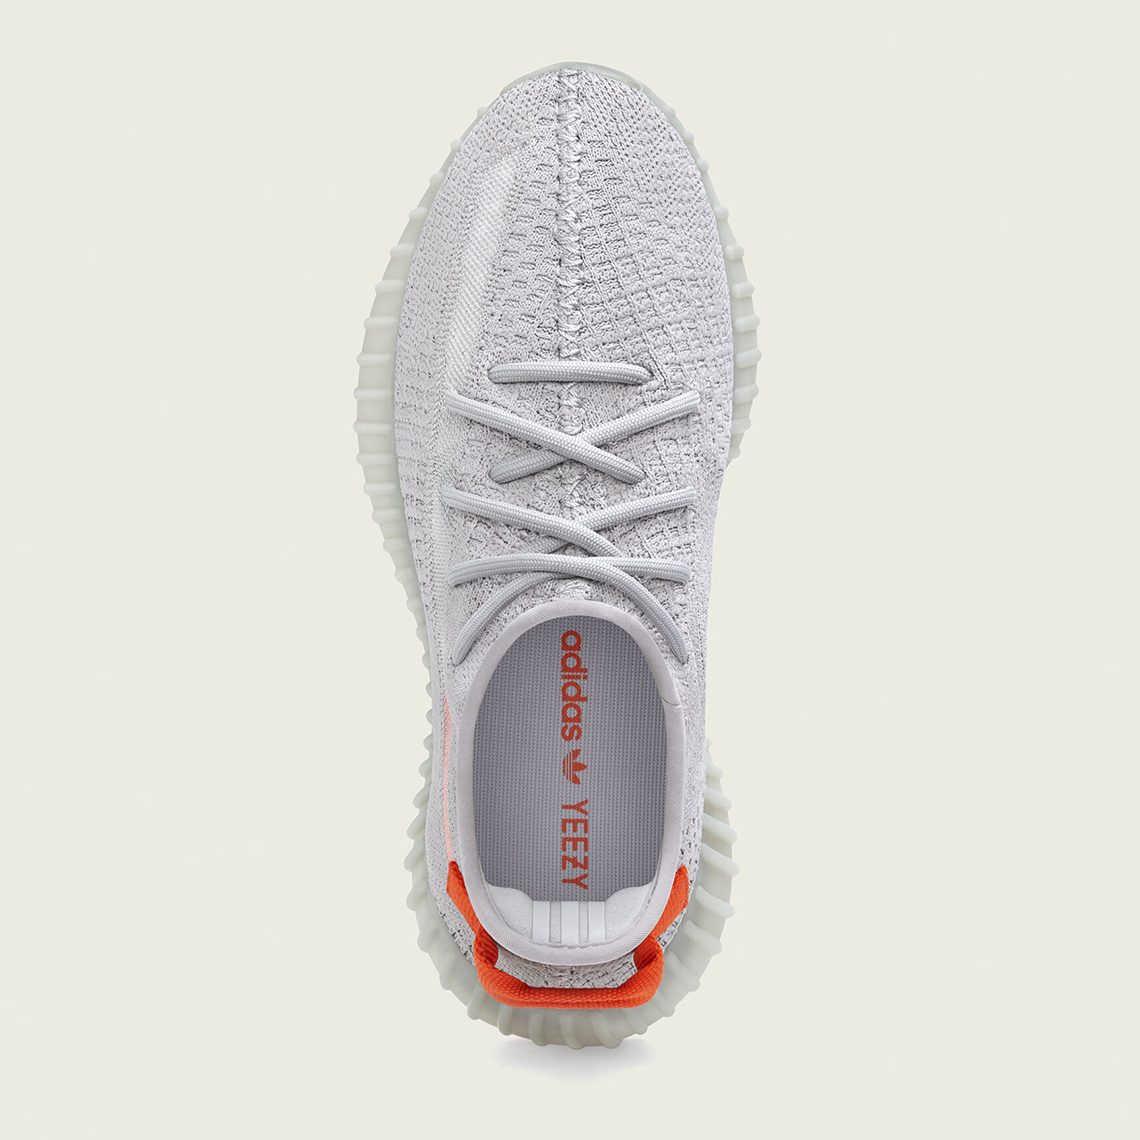 """Adidas Yeezy Boost 350 V2 """"Tail Light"""" Coming Soon: Official Photos"""